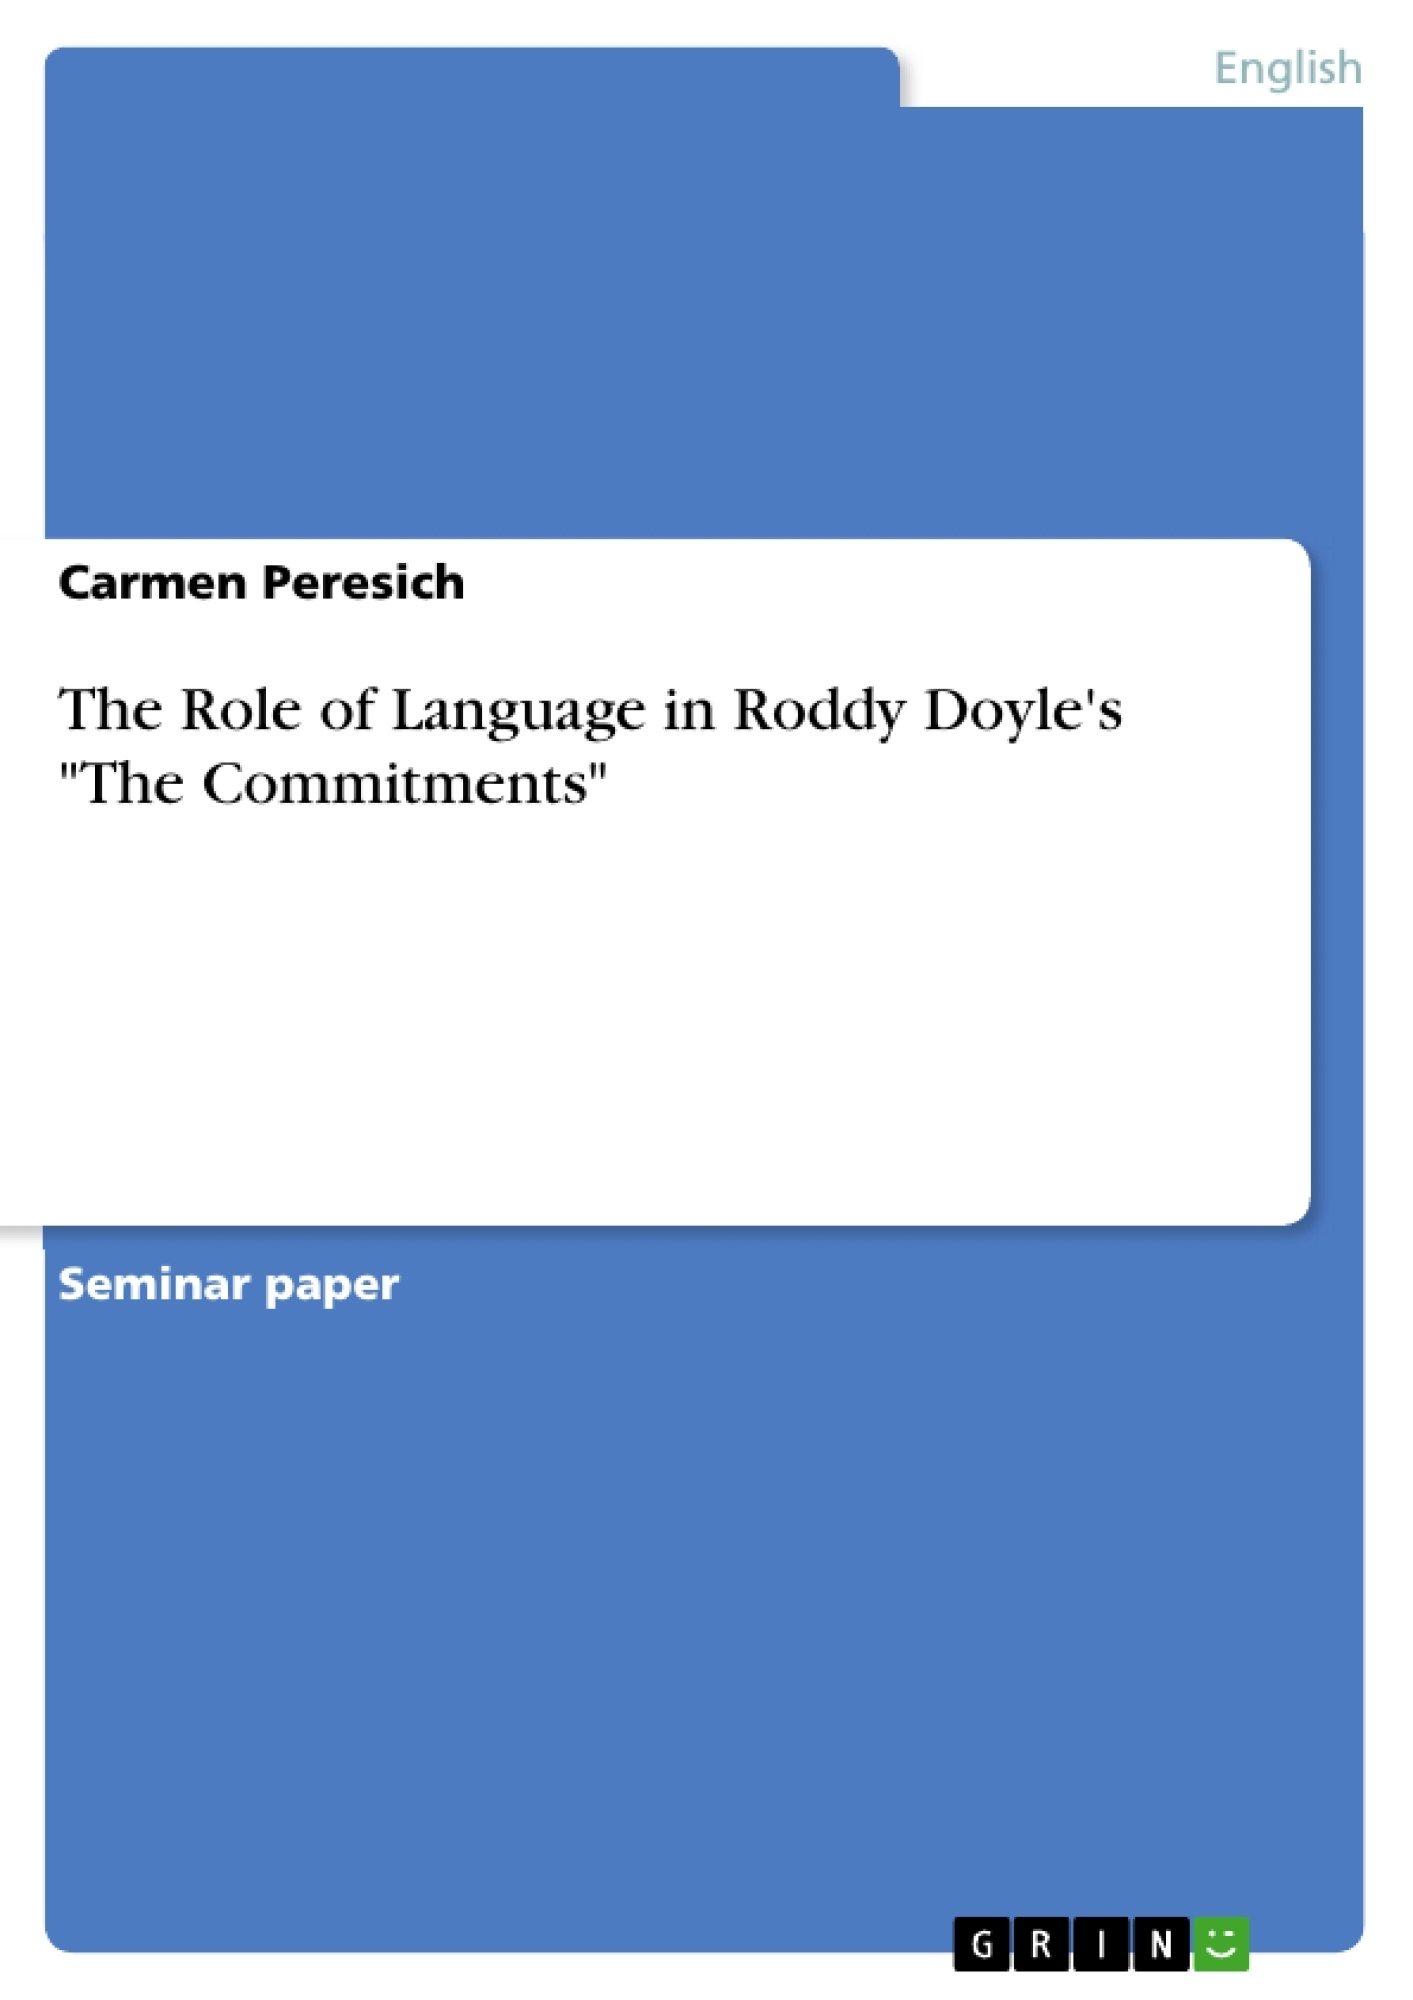 """Title: The Role of Language in Roddy Doyle's """"The Commitments"""""""